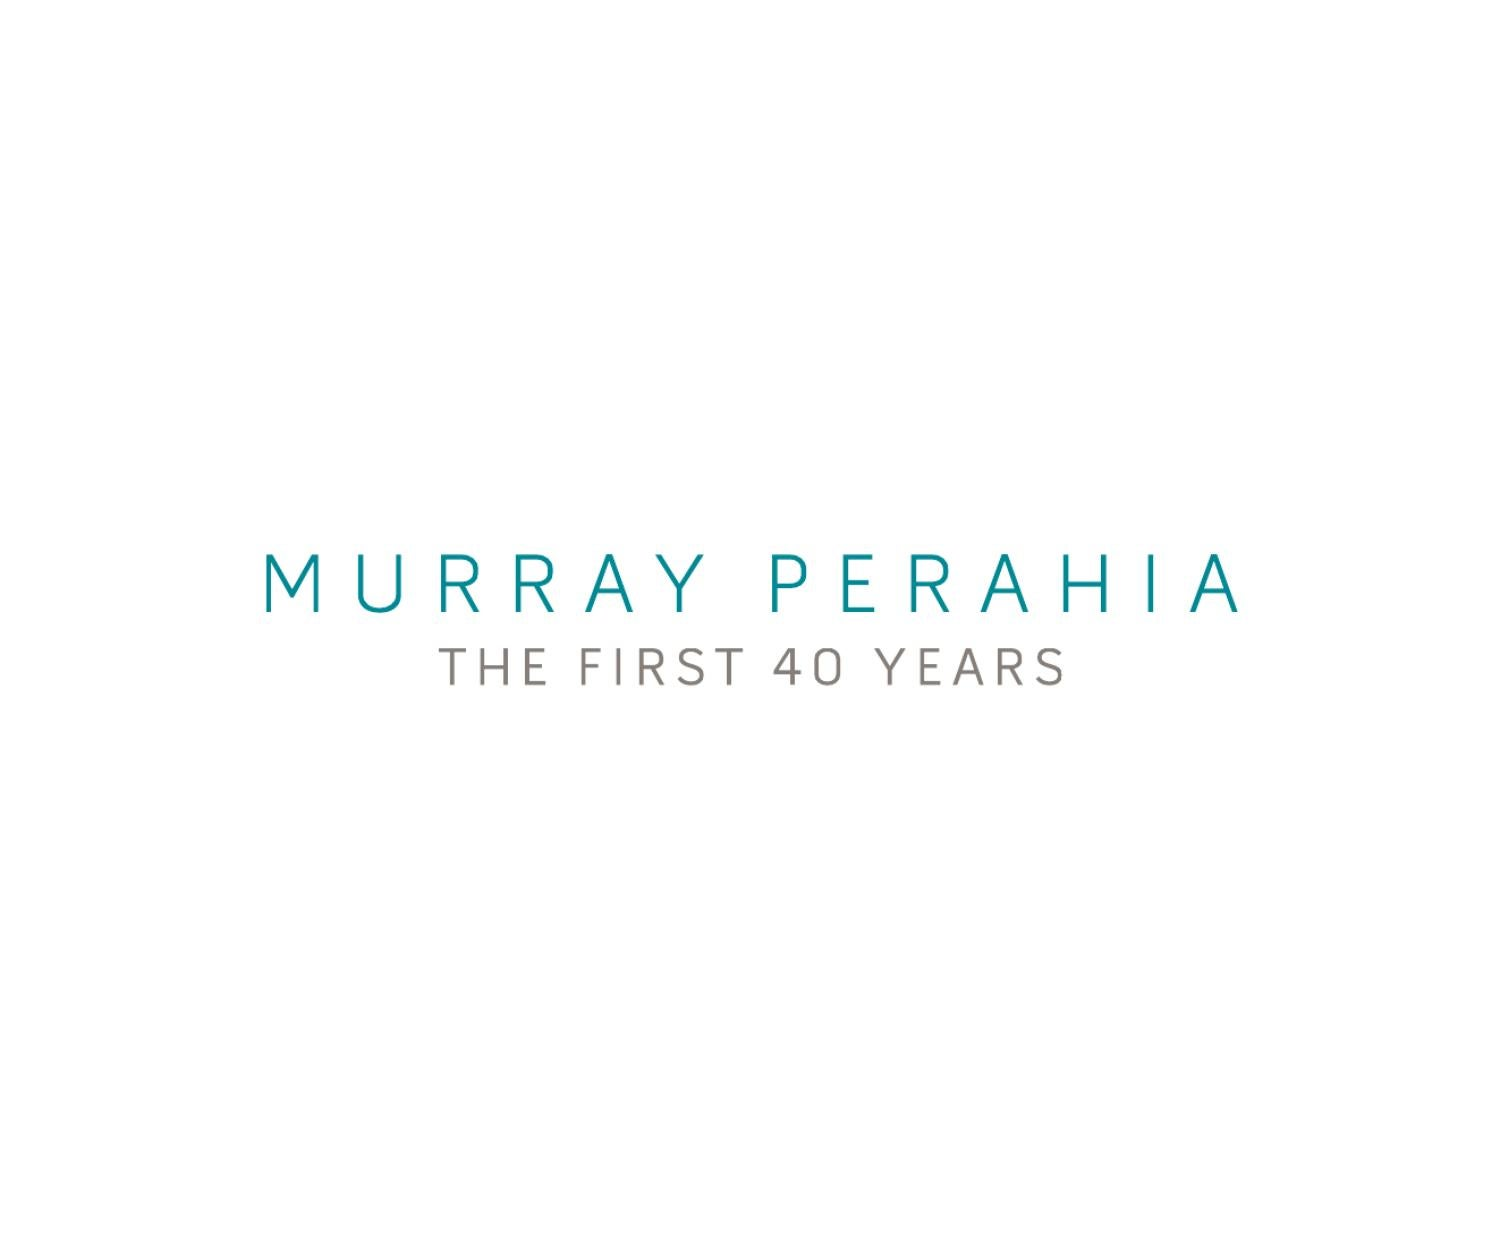 Murray Perahia - The First 40 Years by Sony Music Entertainment ...